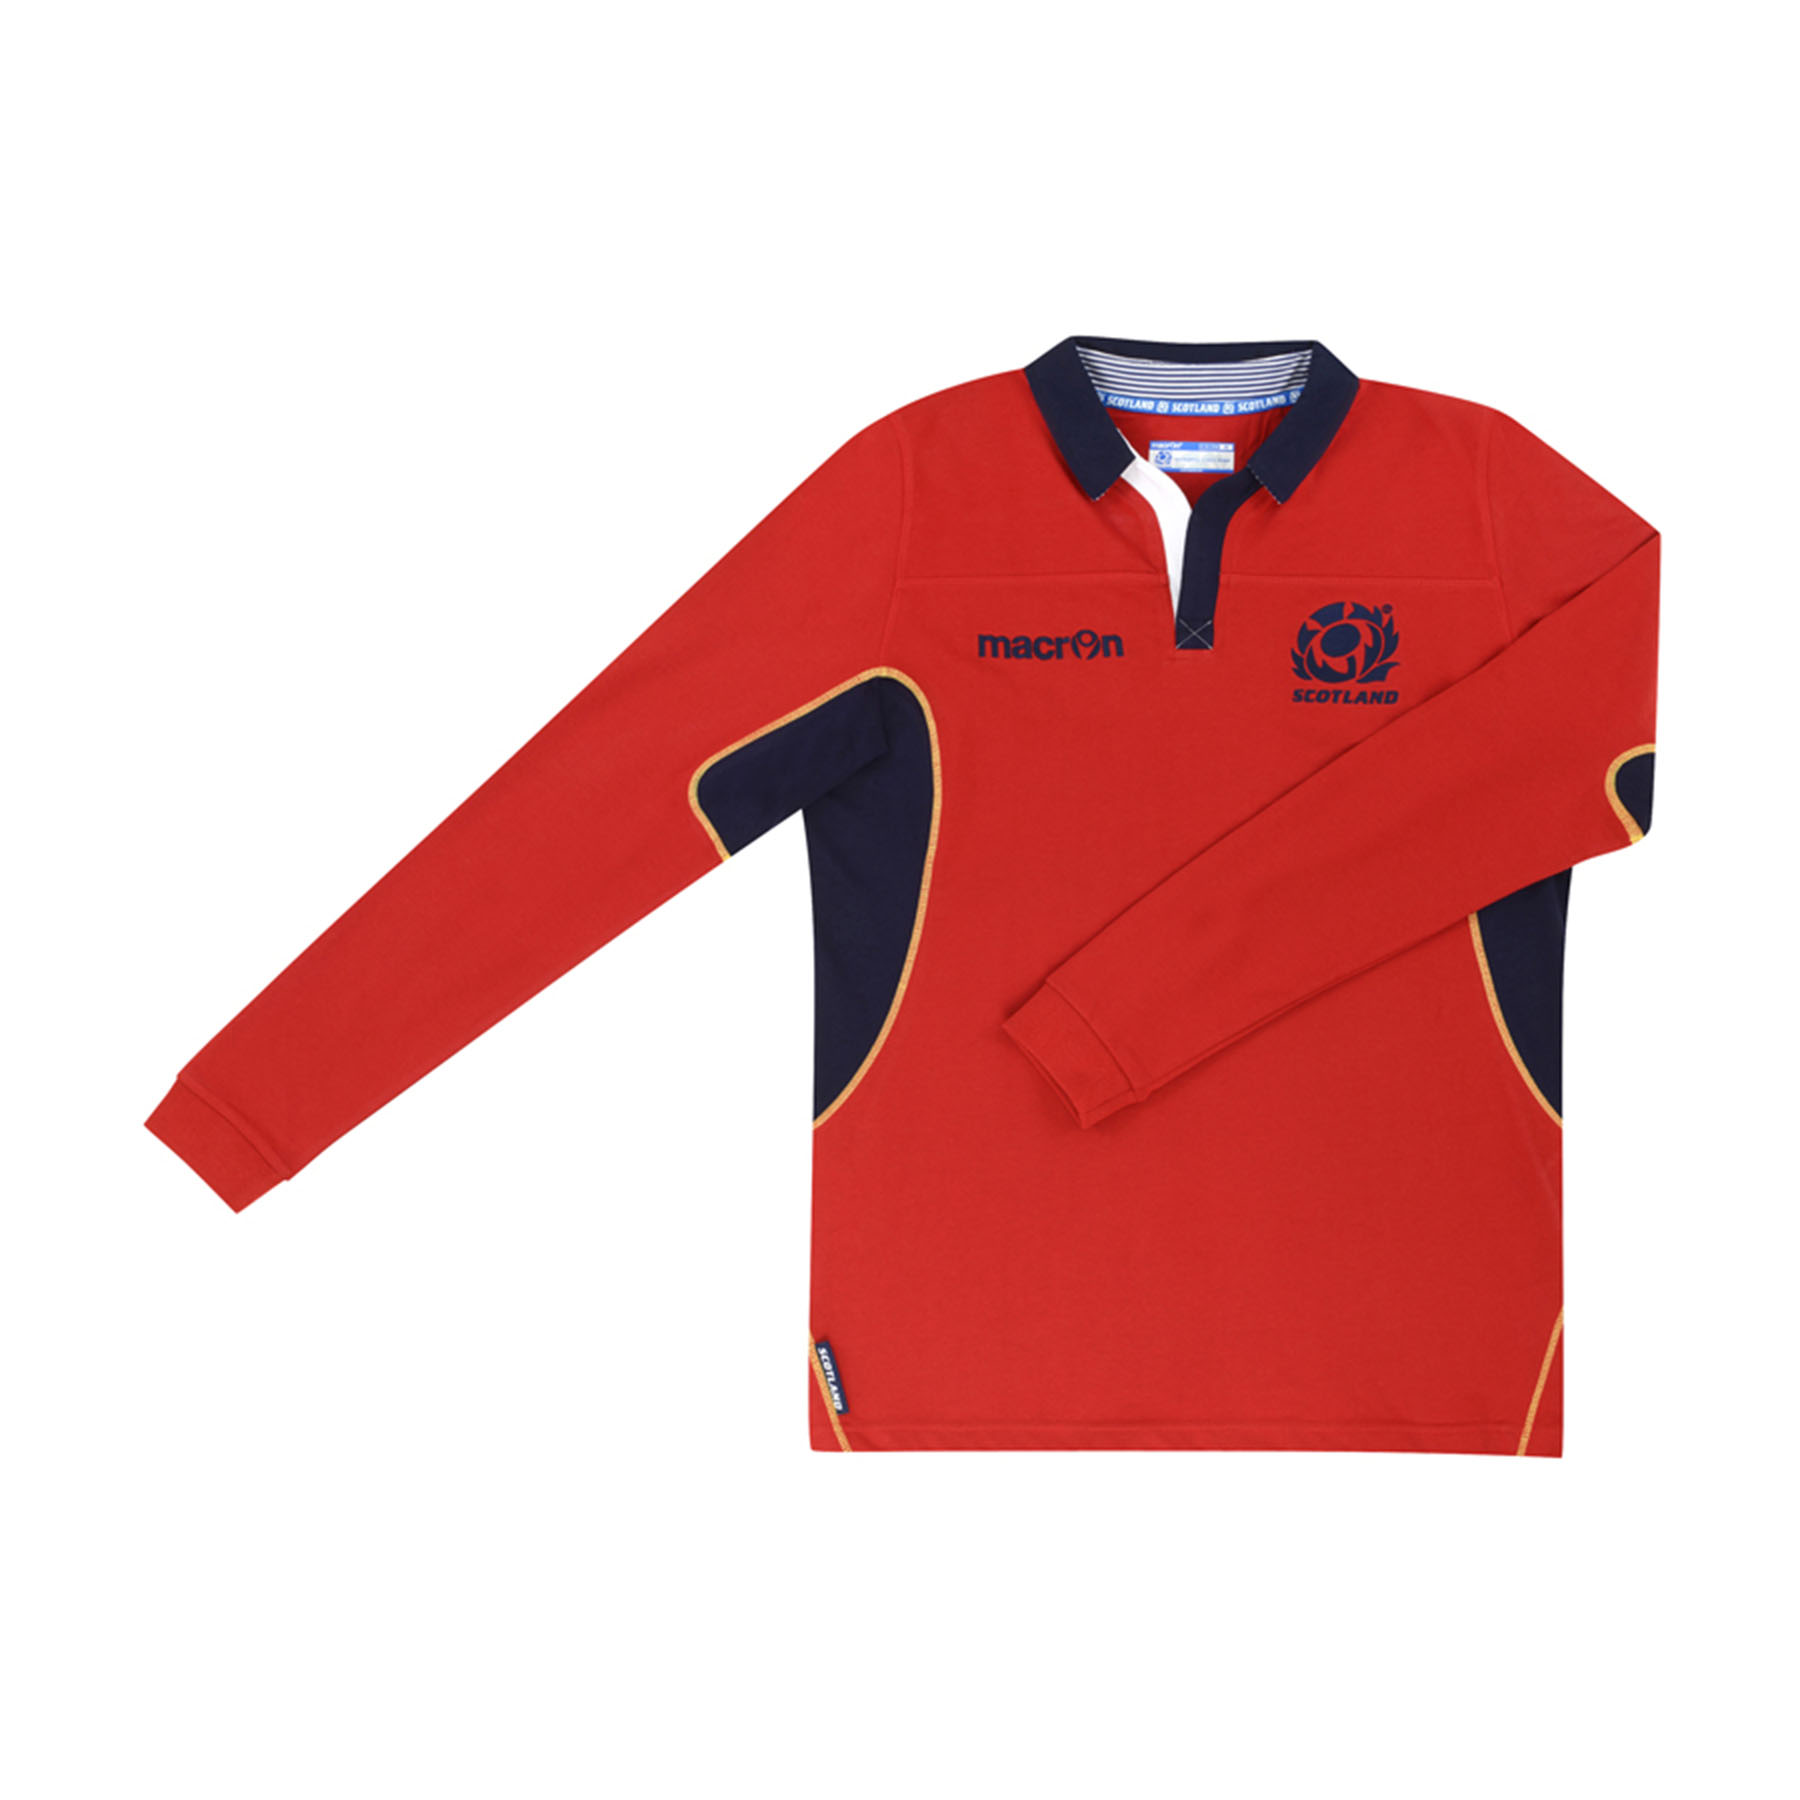 Scotland Rugby Cotton Away Shirt 2014/15 - Long Sleeved